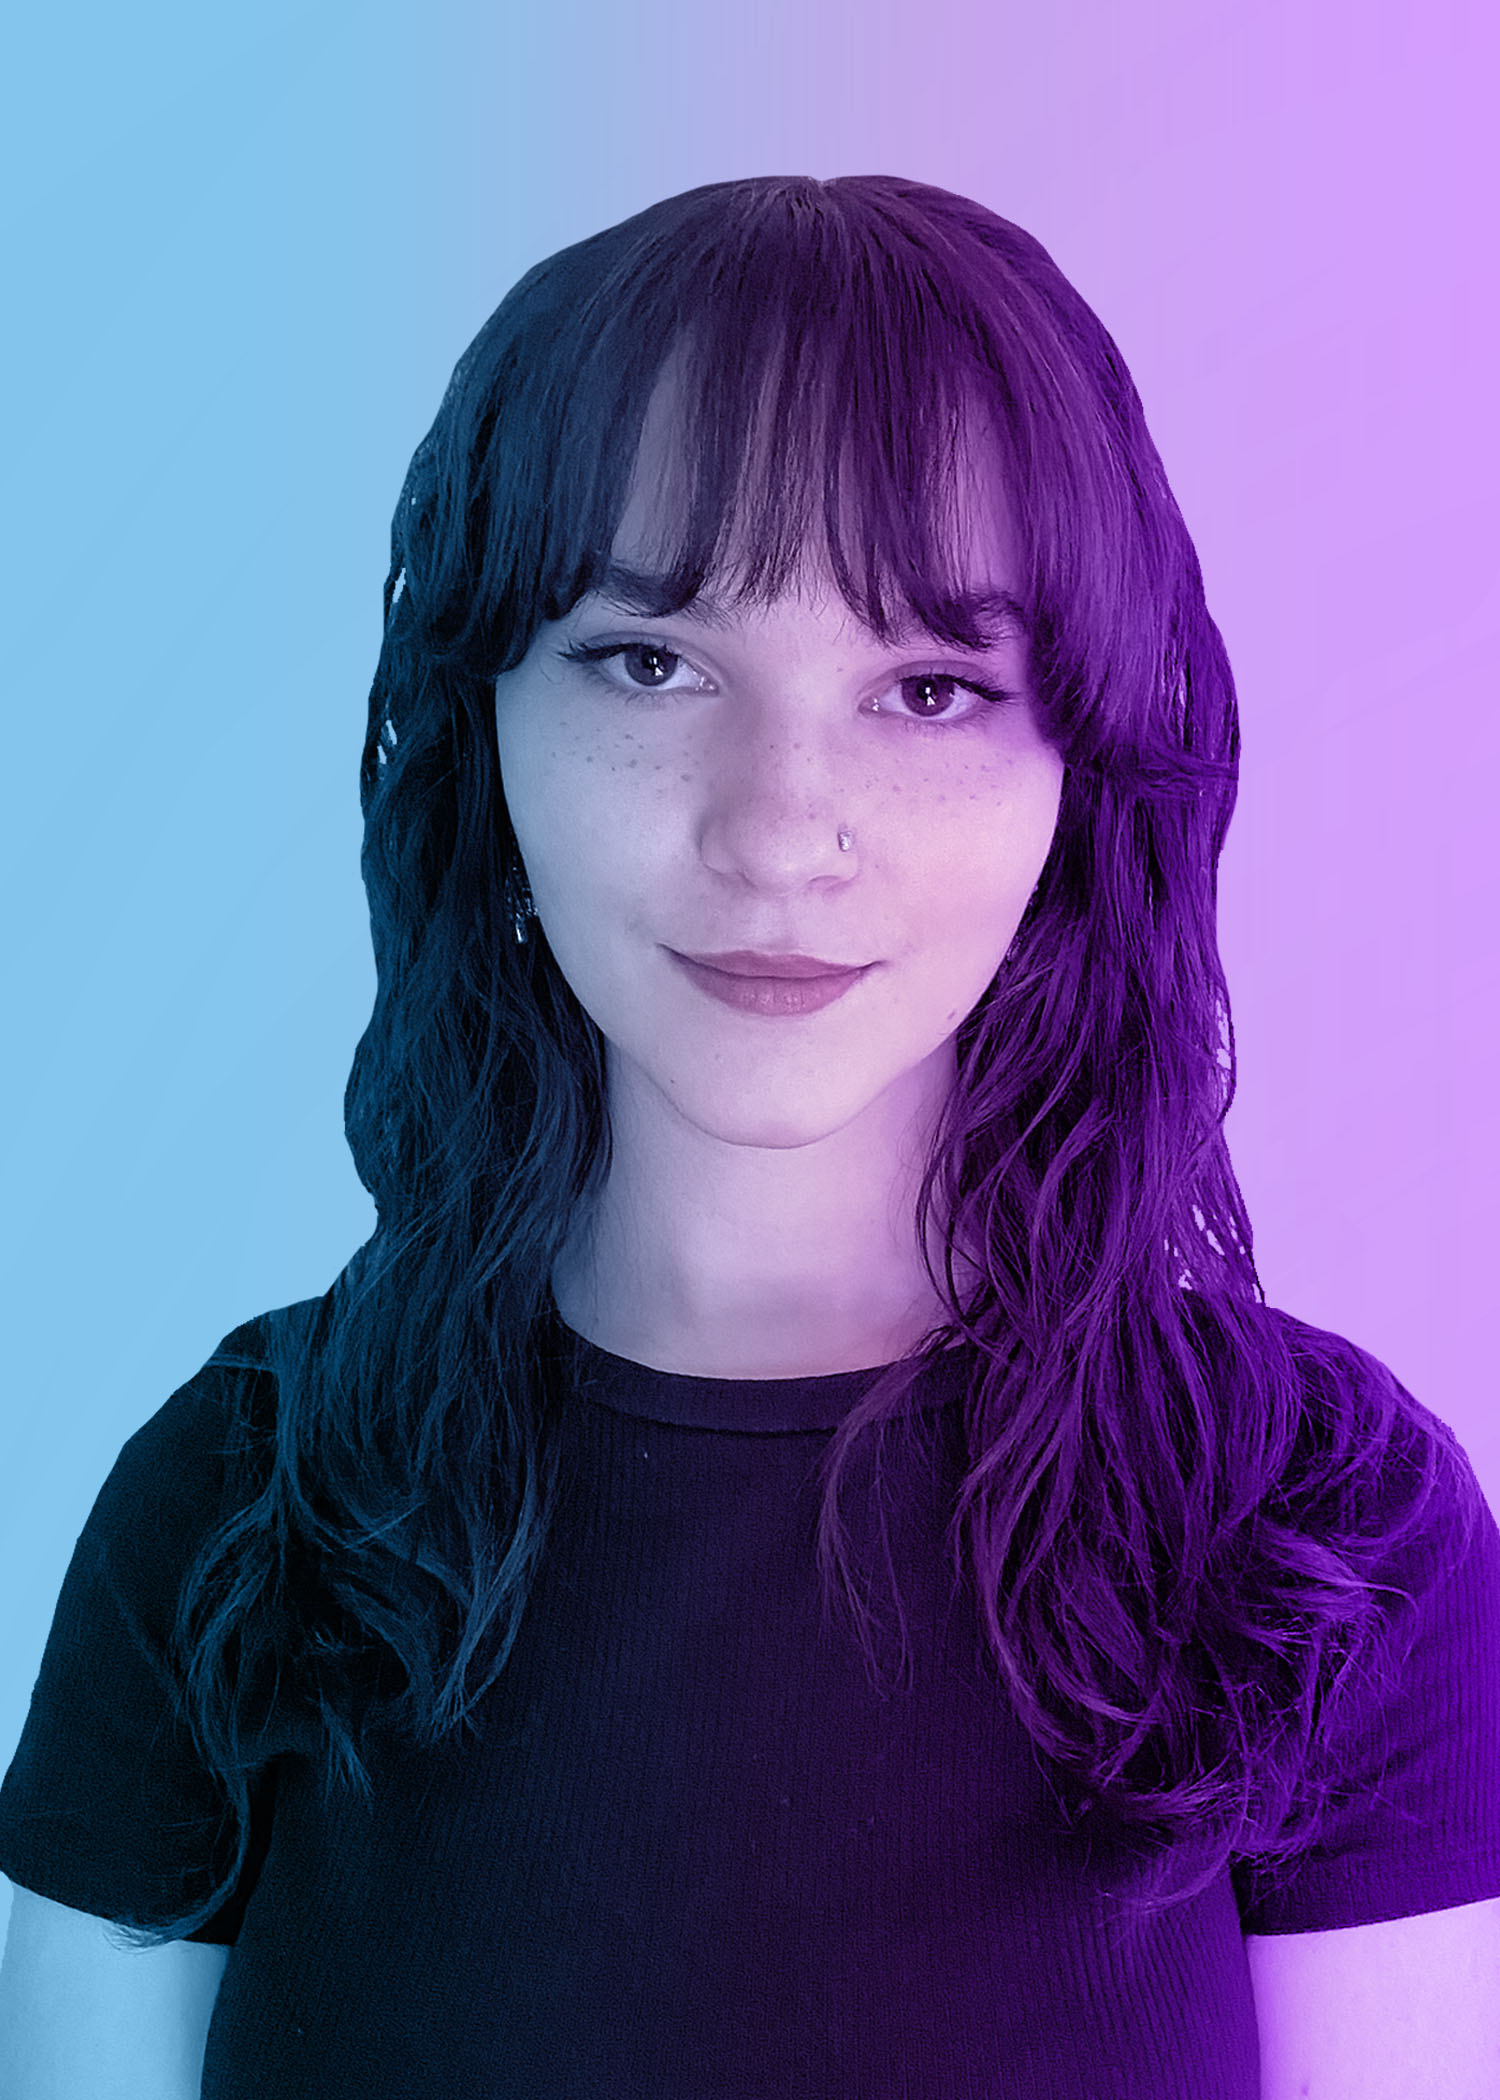 photo of female college student with wavy medium length hair. blue and purple overlay on photo.